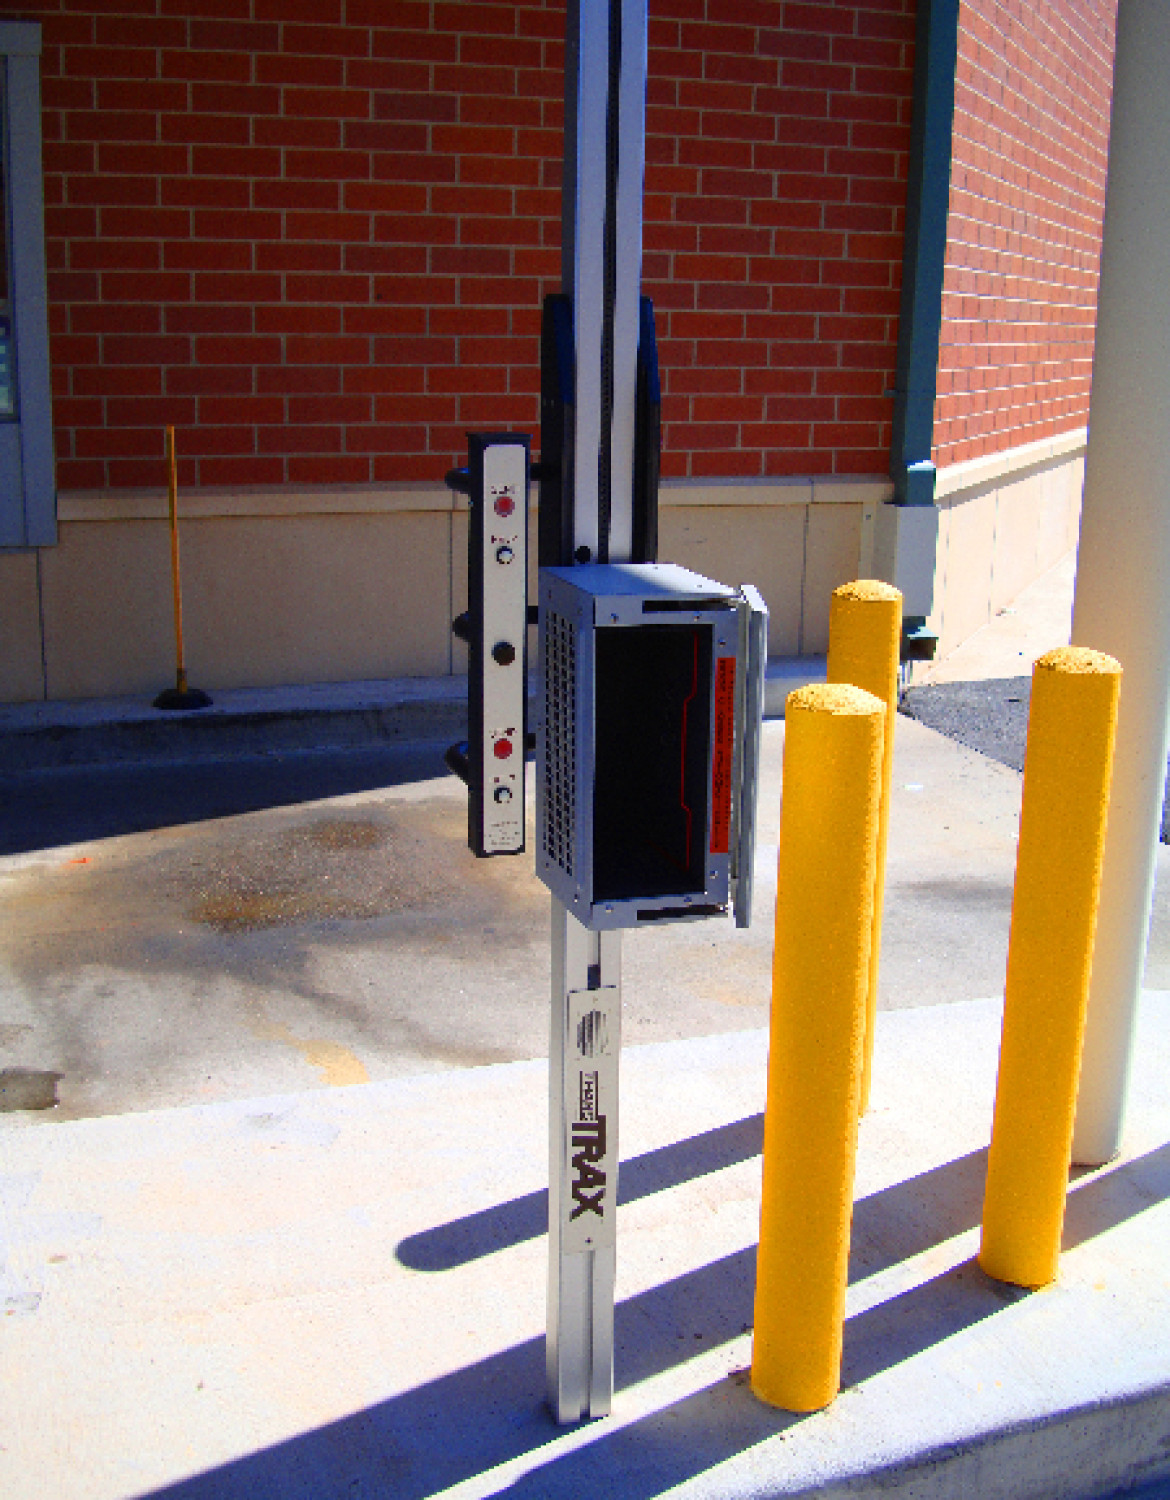 Pharmacy drive-up system installed by black mesa security